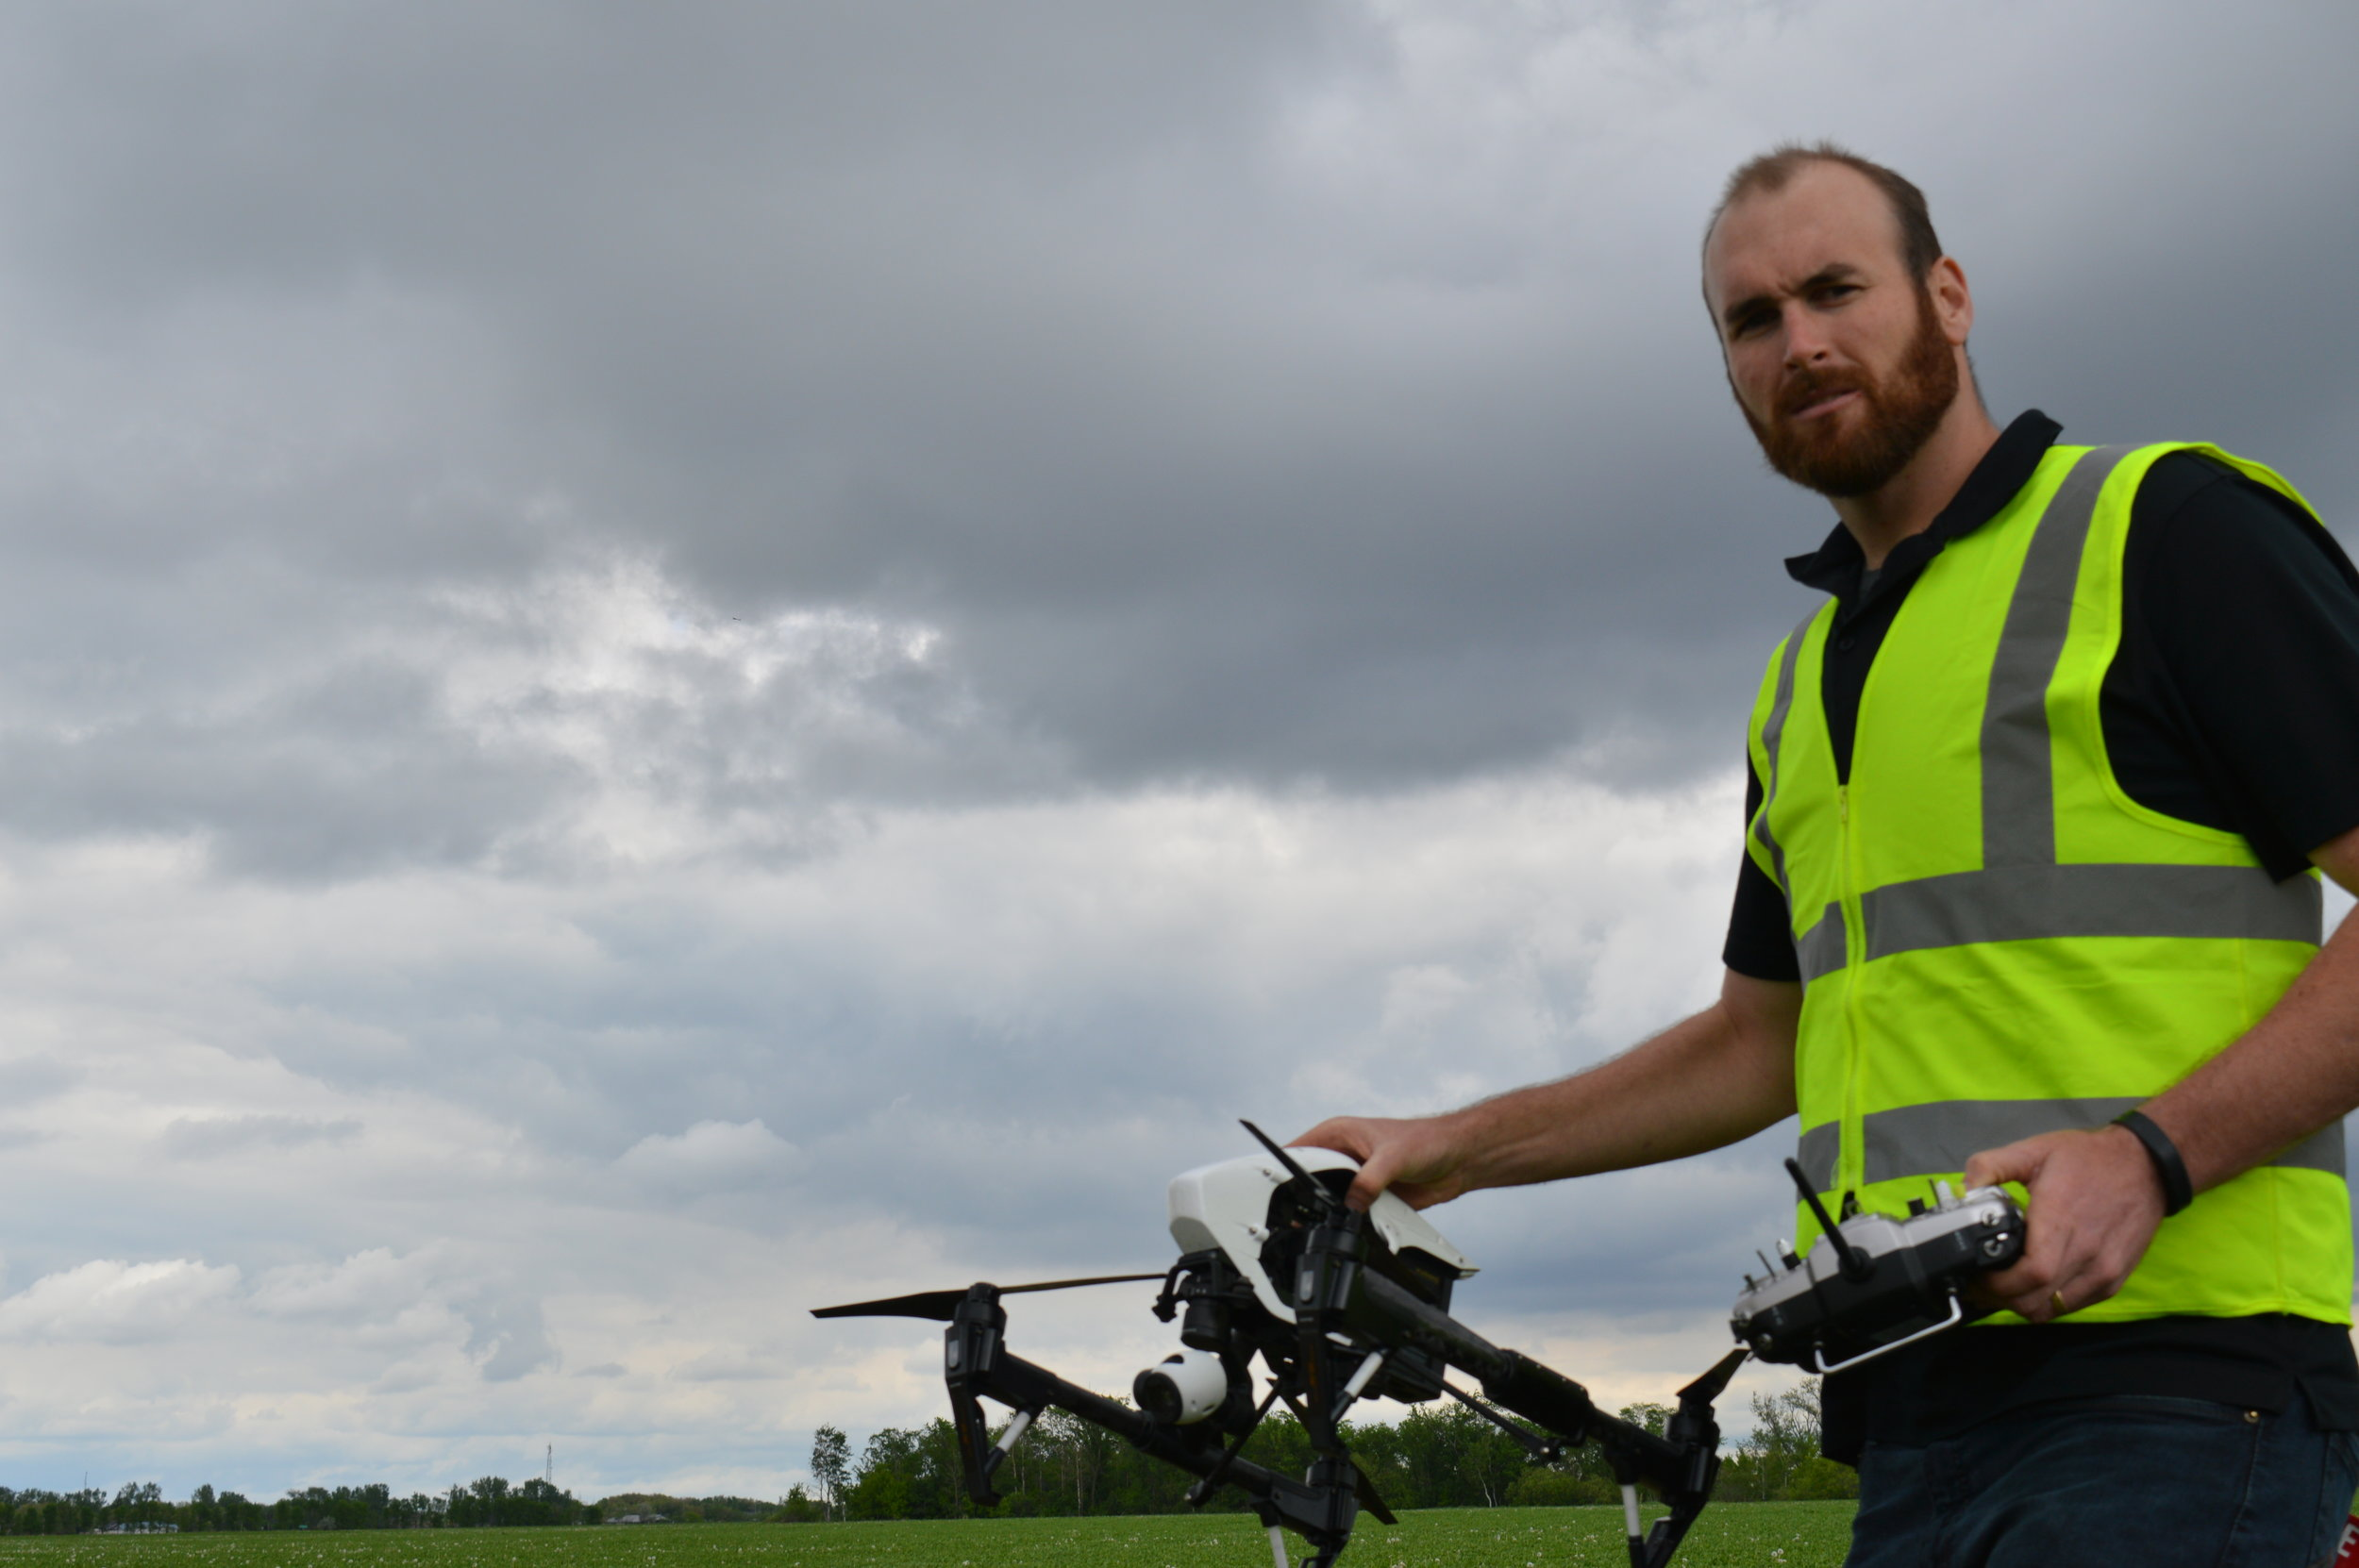 Matthew Johnson, owner of M3 Aerial getting ready to launch the DJI Inspire 1. You can gather NDVI when it is cloudy, but try to avoid collecting when there are spotty cloud cover that casts temporary shadows on the field during your flight...